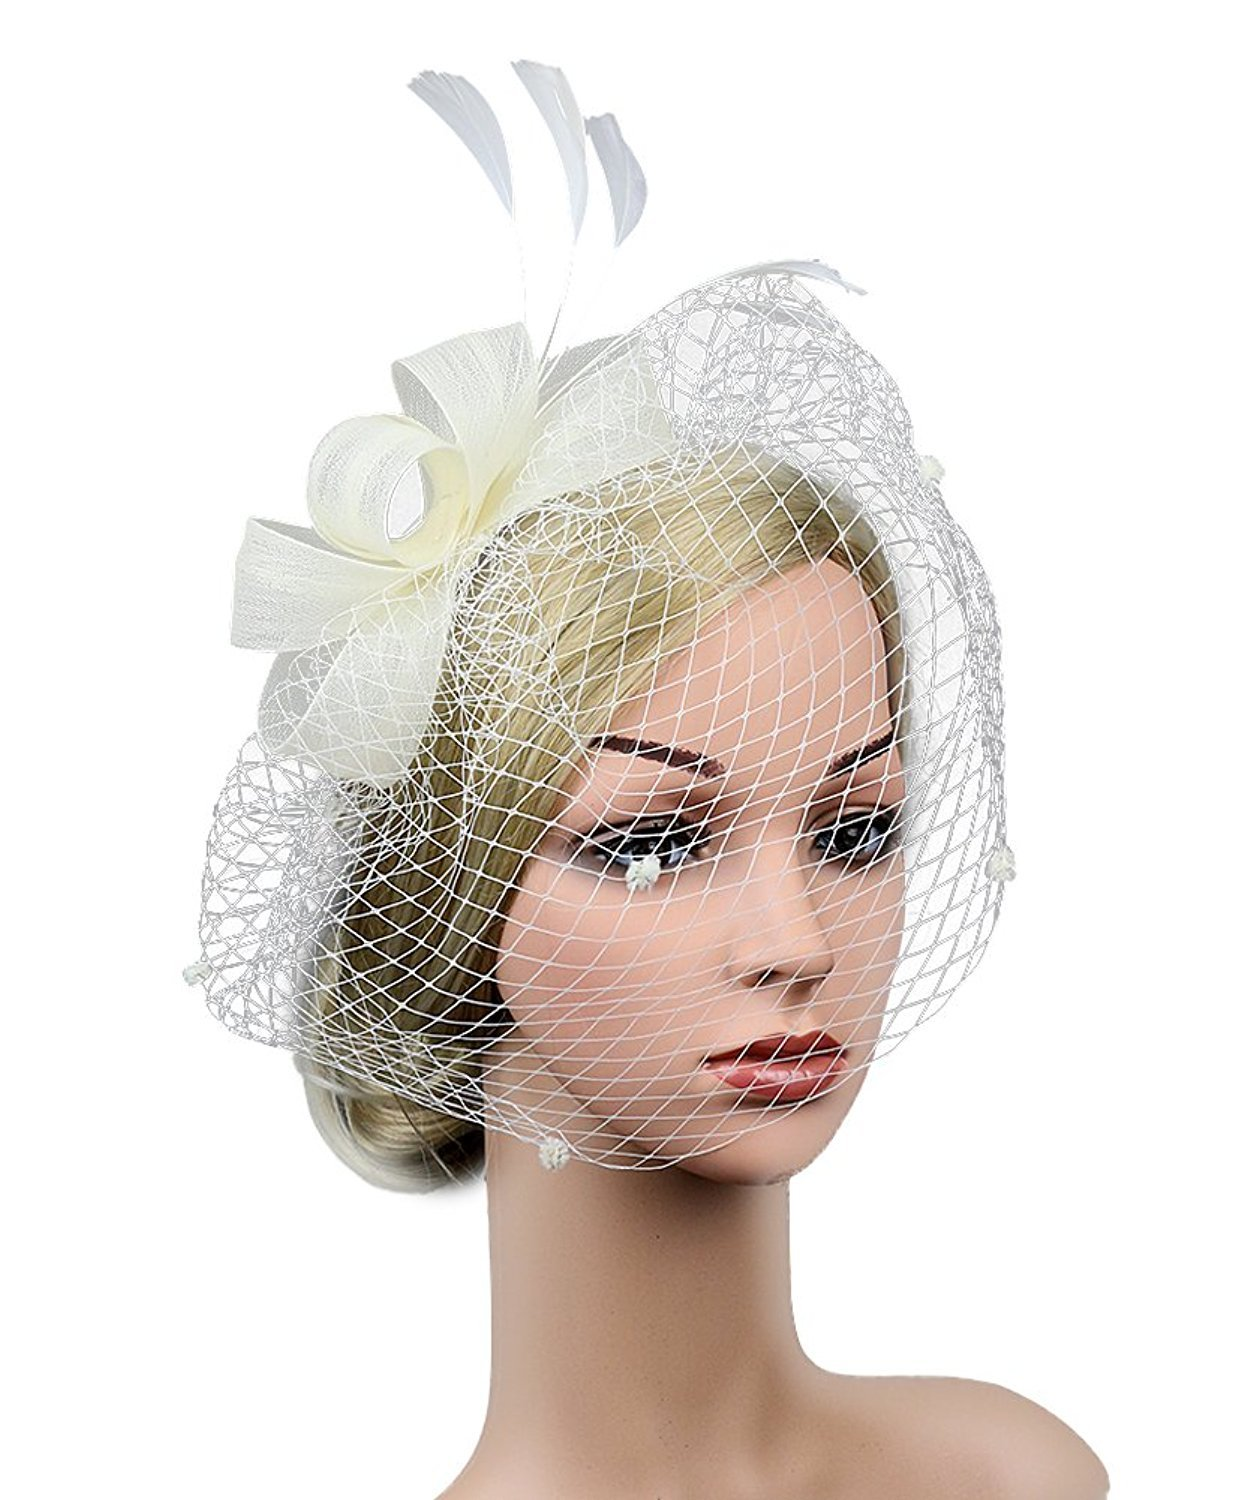 Merya Dress DotVeil Kentucky Derby Fascinator Hats Feather Prom Cocktail Tea Party Hats Pure White